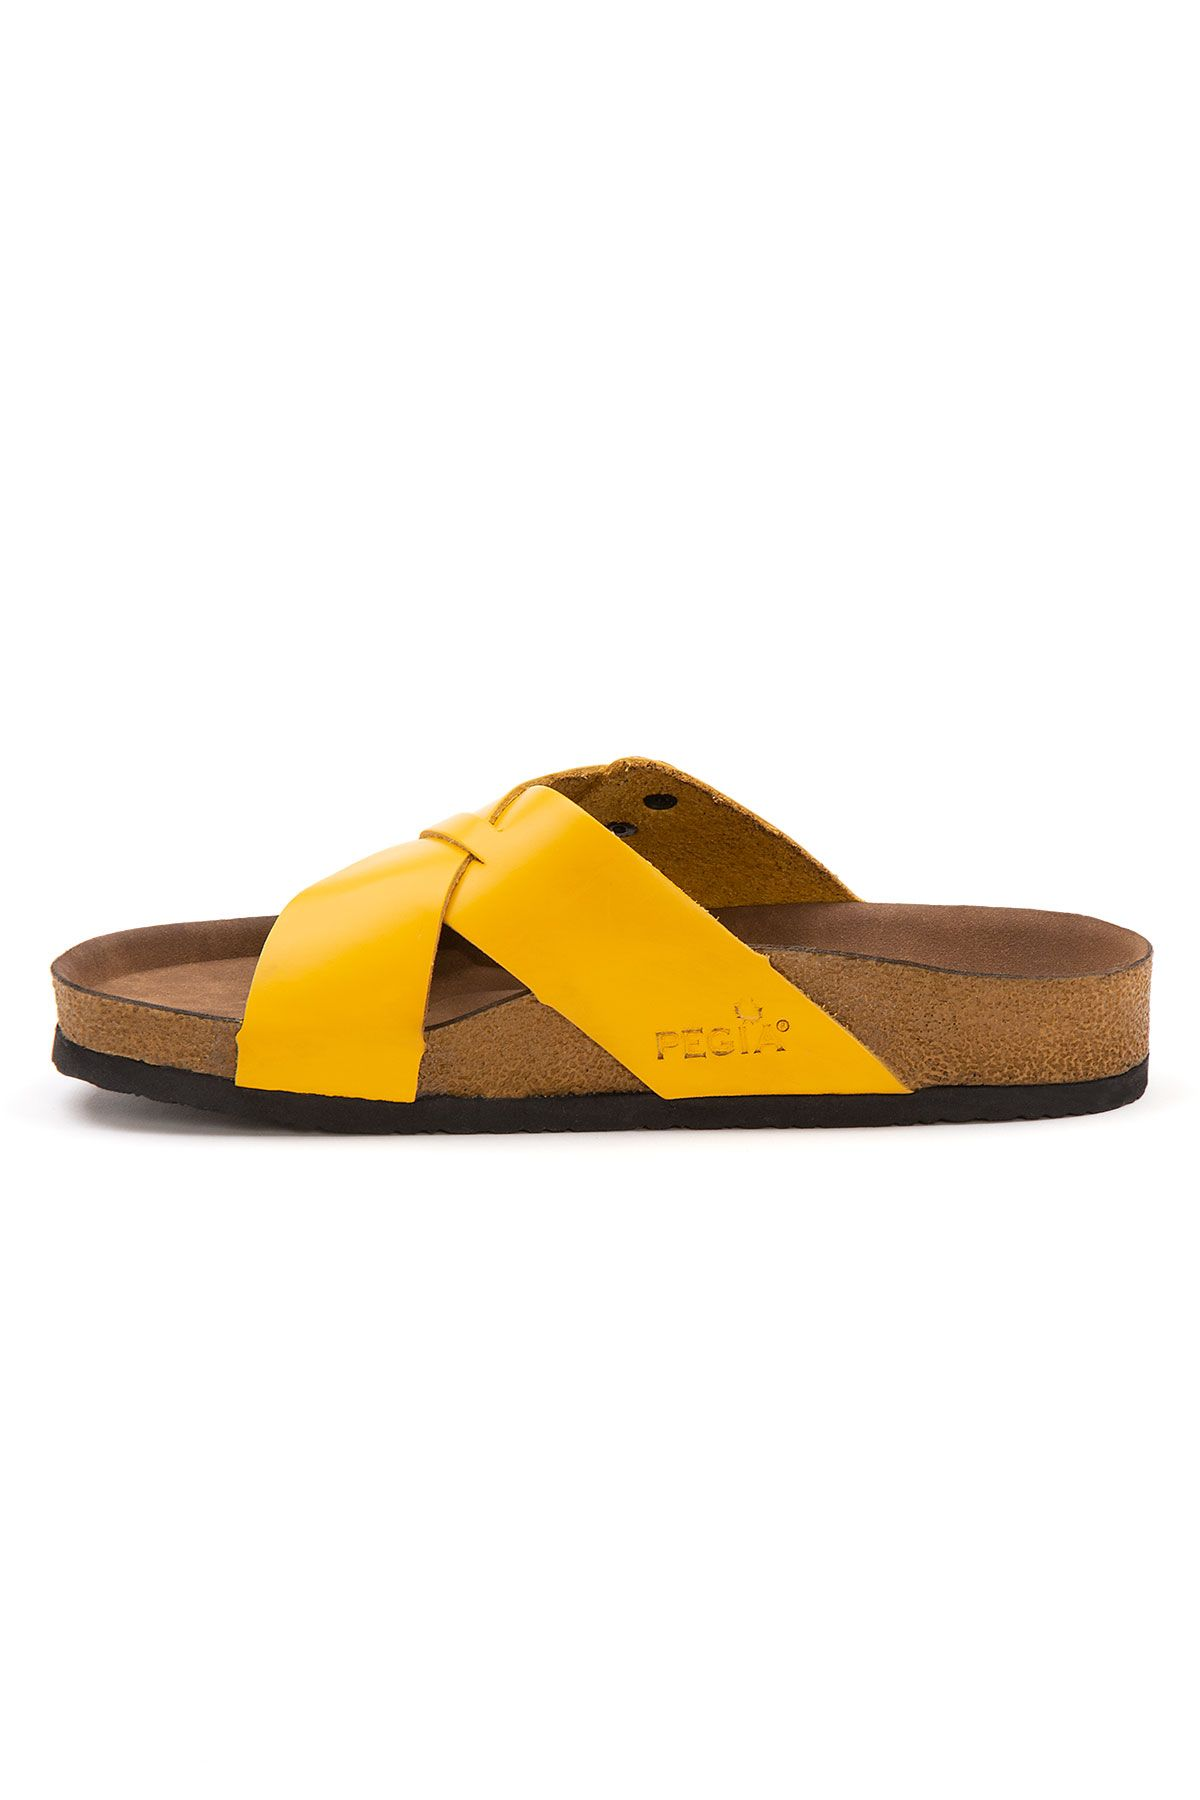 Pegia Women's Leather Strap Slippers 215524 Yellow